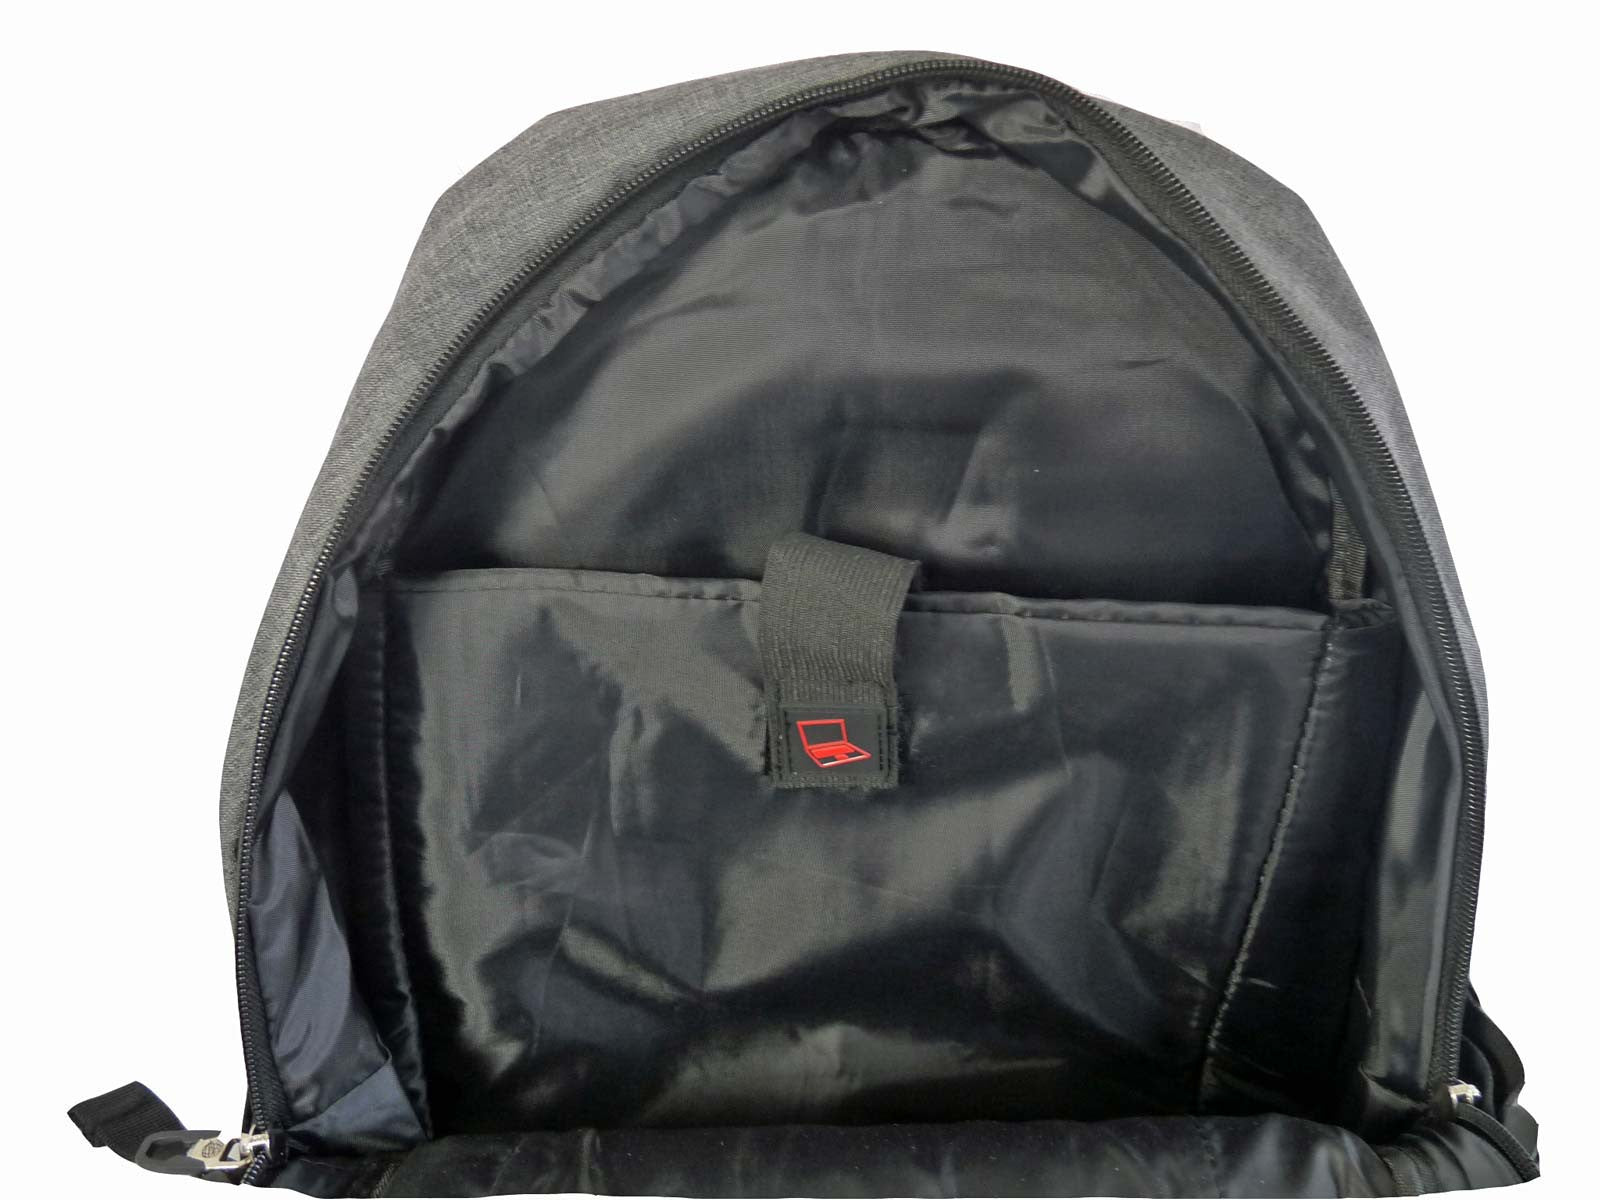 Laptop Macbook Backpack Rucksack Bag RL45GY Sleeve View